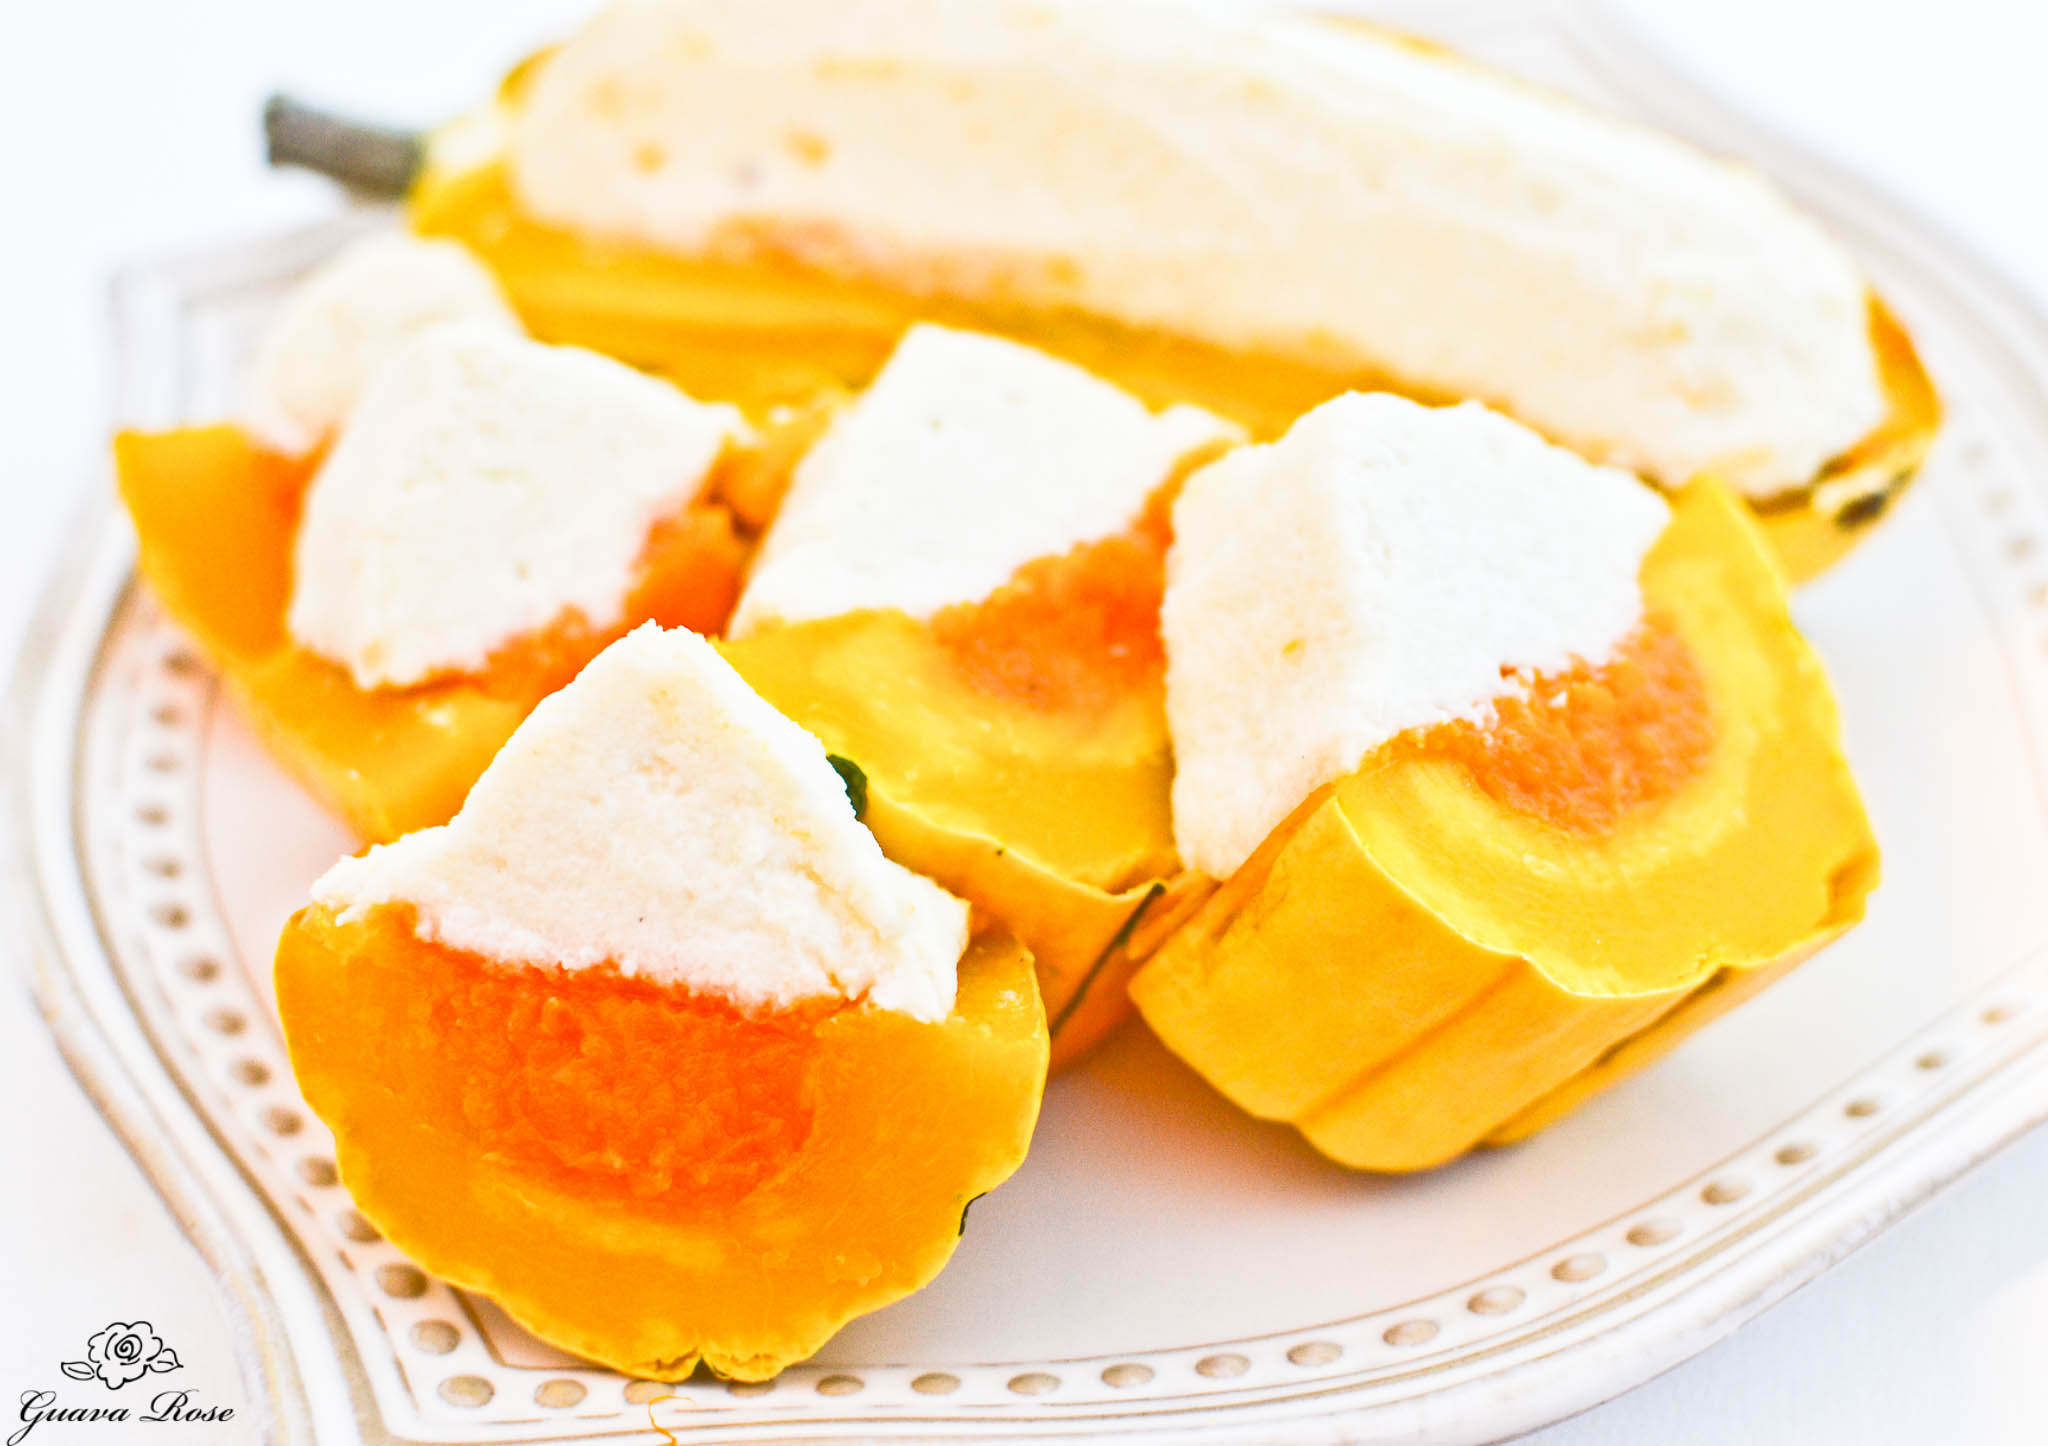 Candy Corned Squash (Delicata, Butternut, and Cauliflower) slices 1